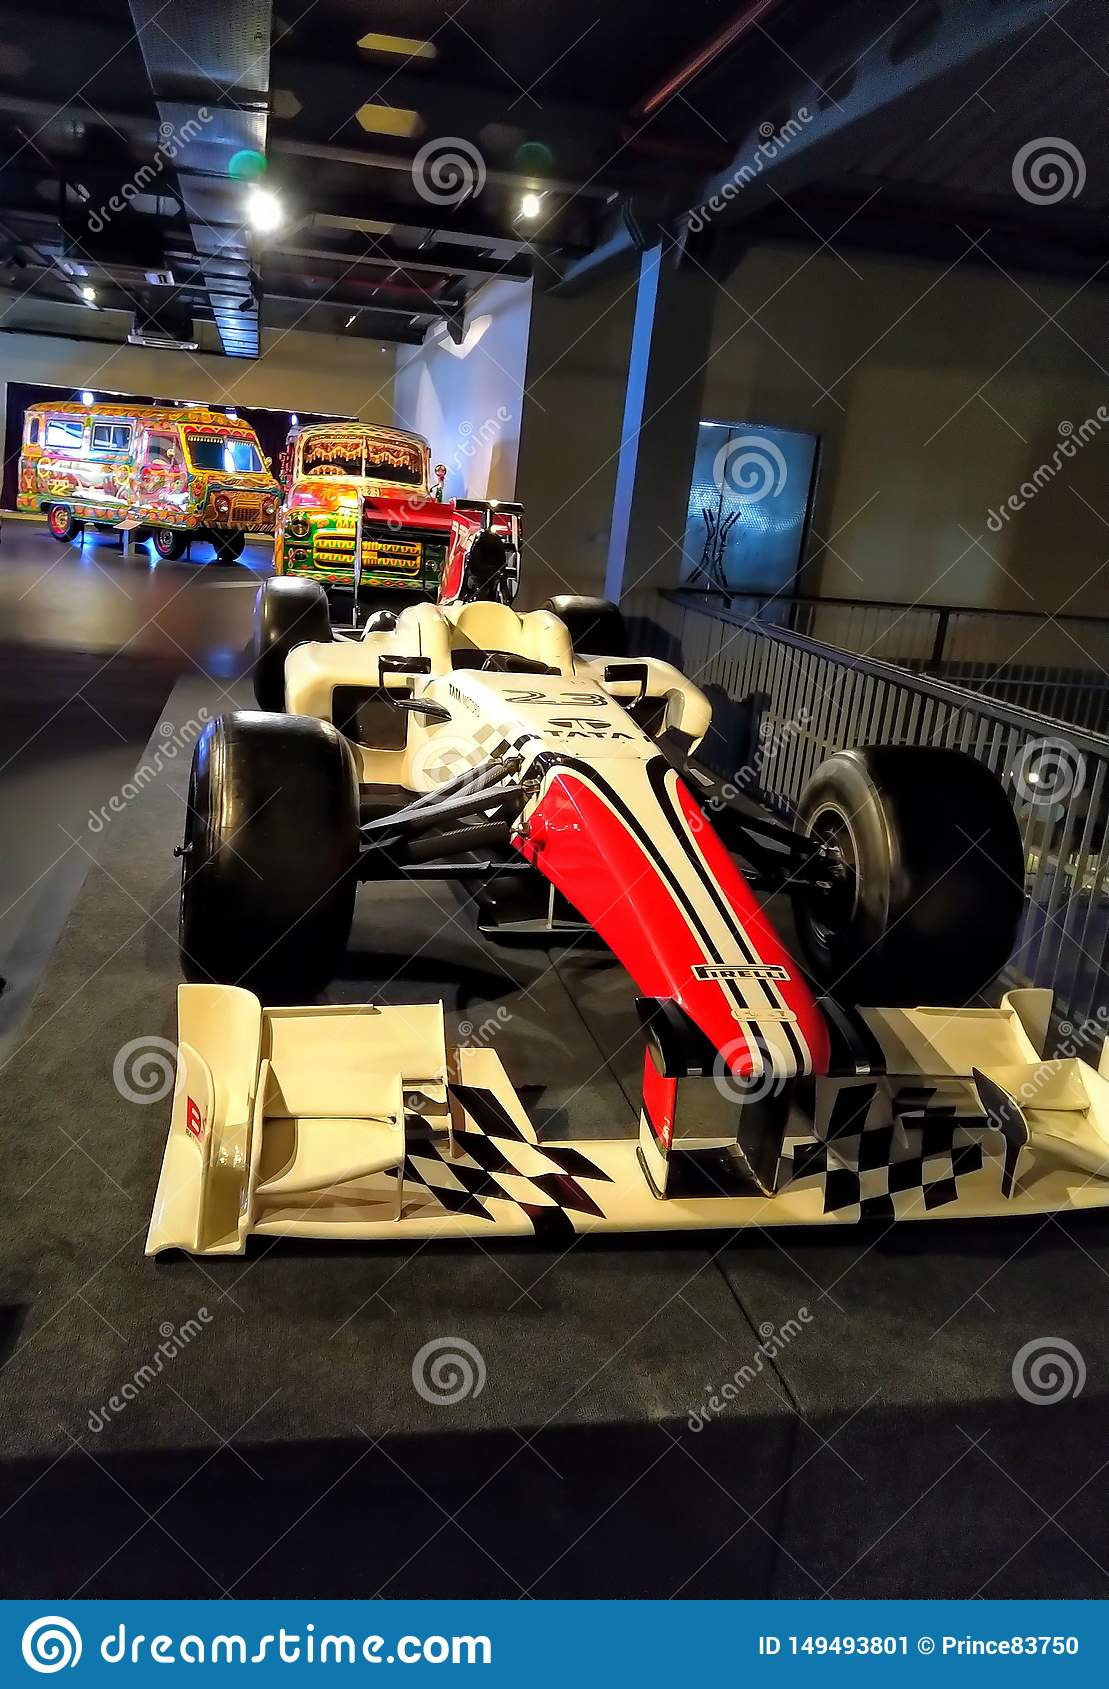 Old Retro vintage racing car show in museum. Red colour formula racing car.